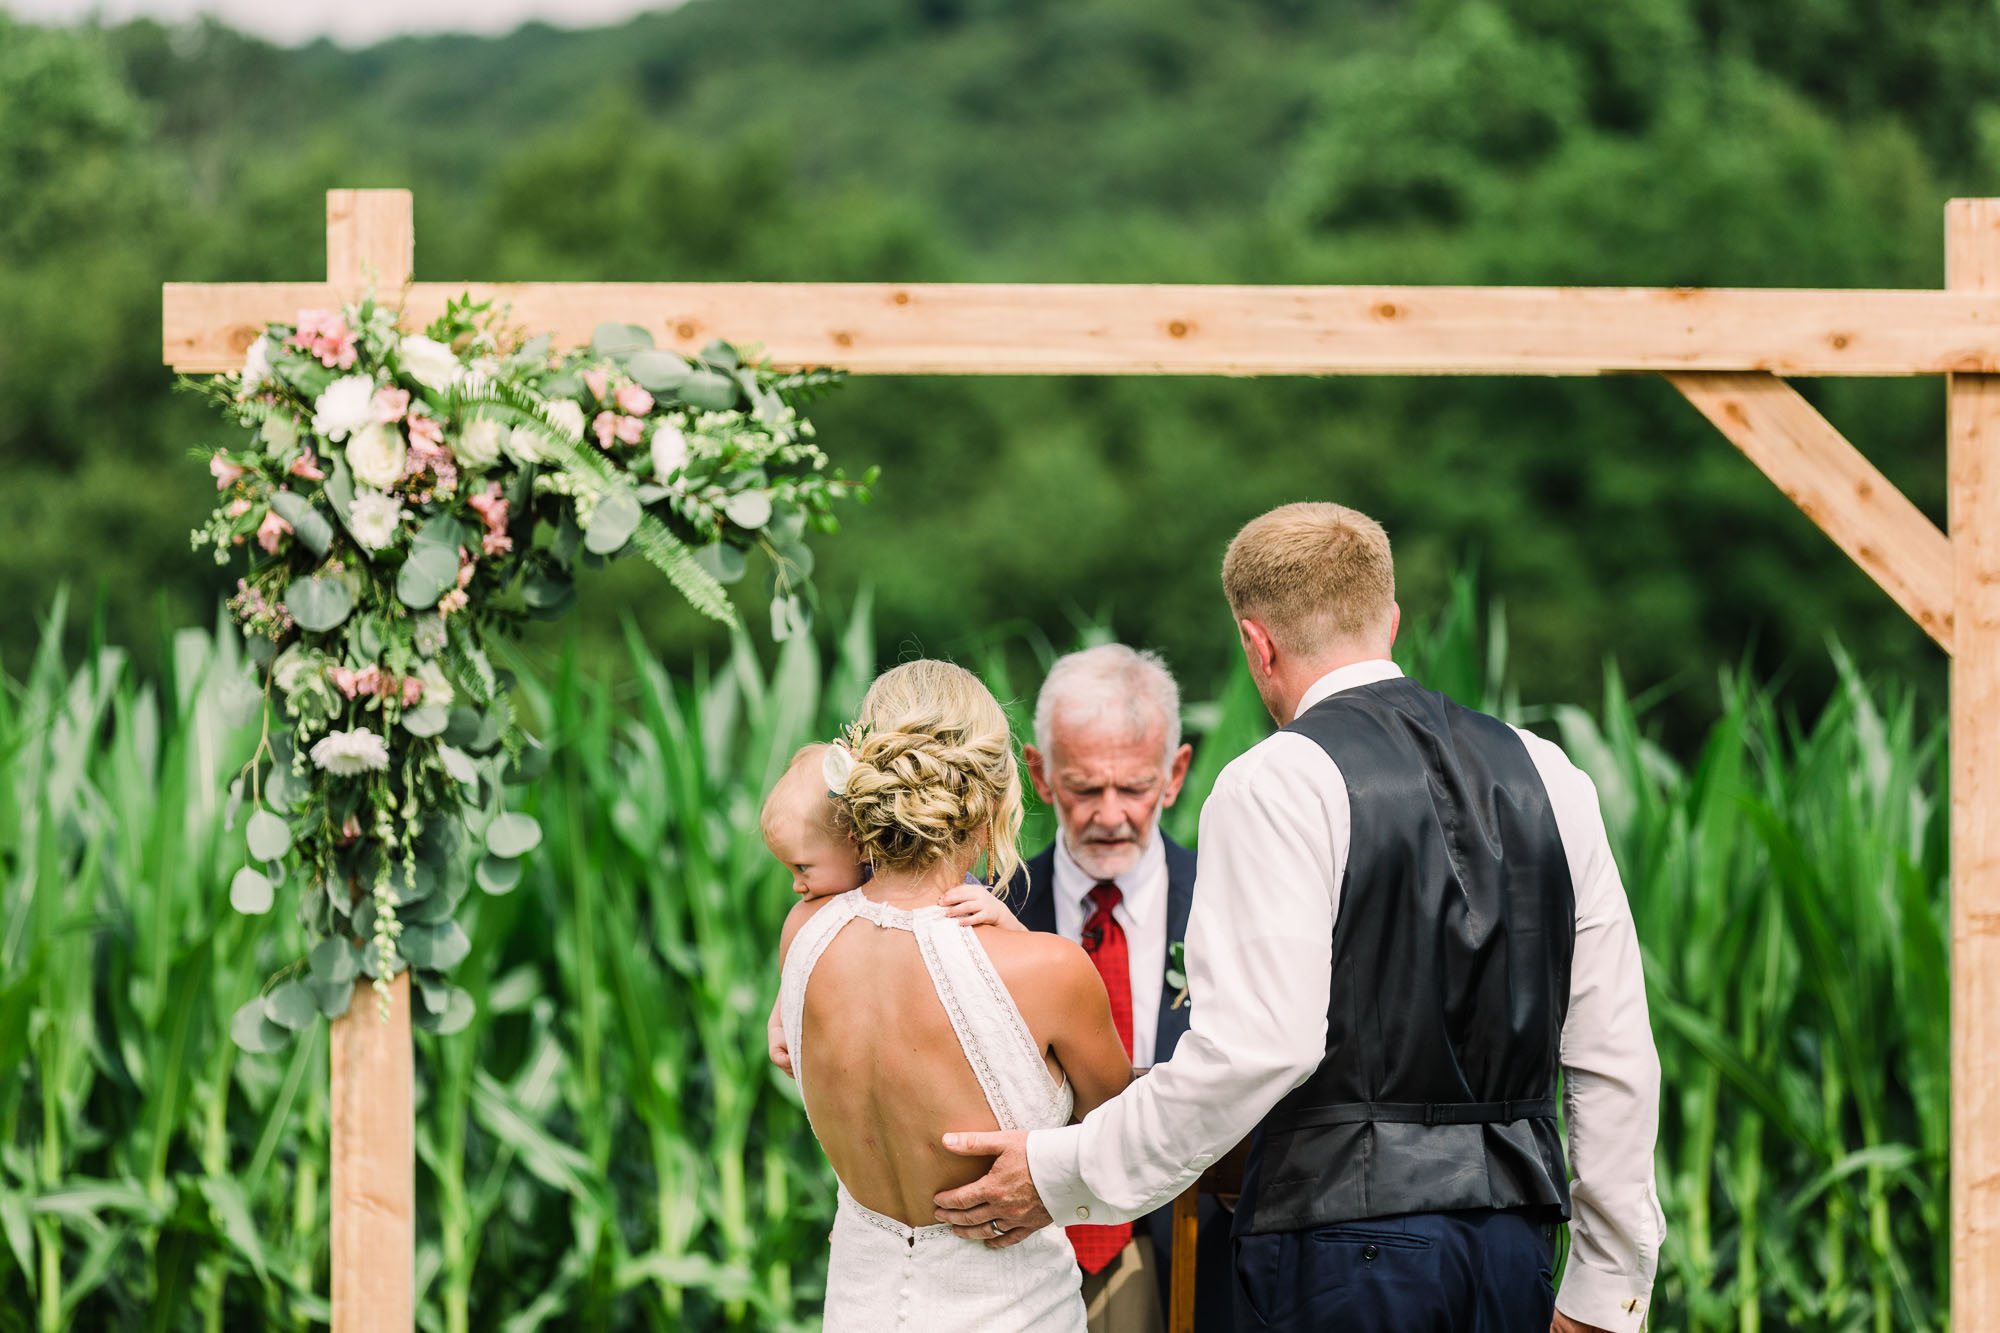 Muncy-backyard-farm-wedding-4993.jpg